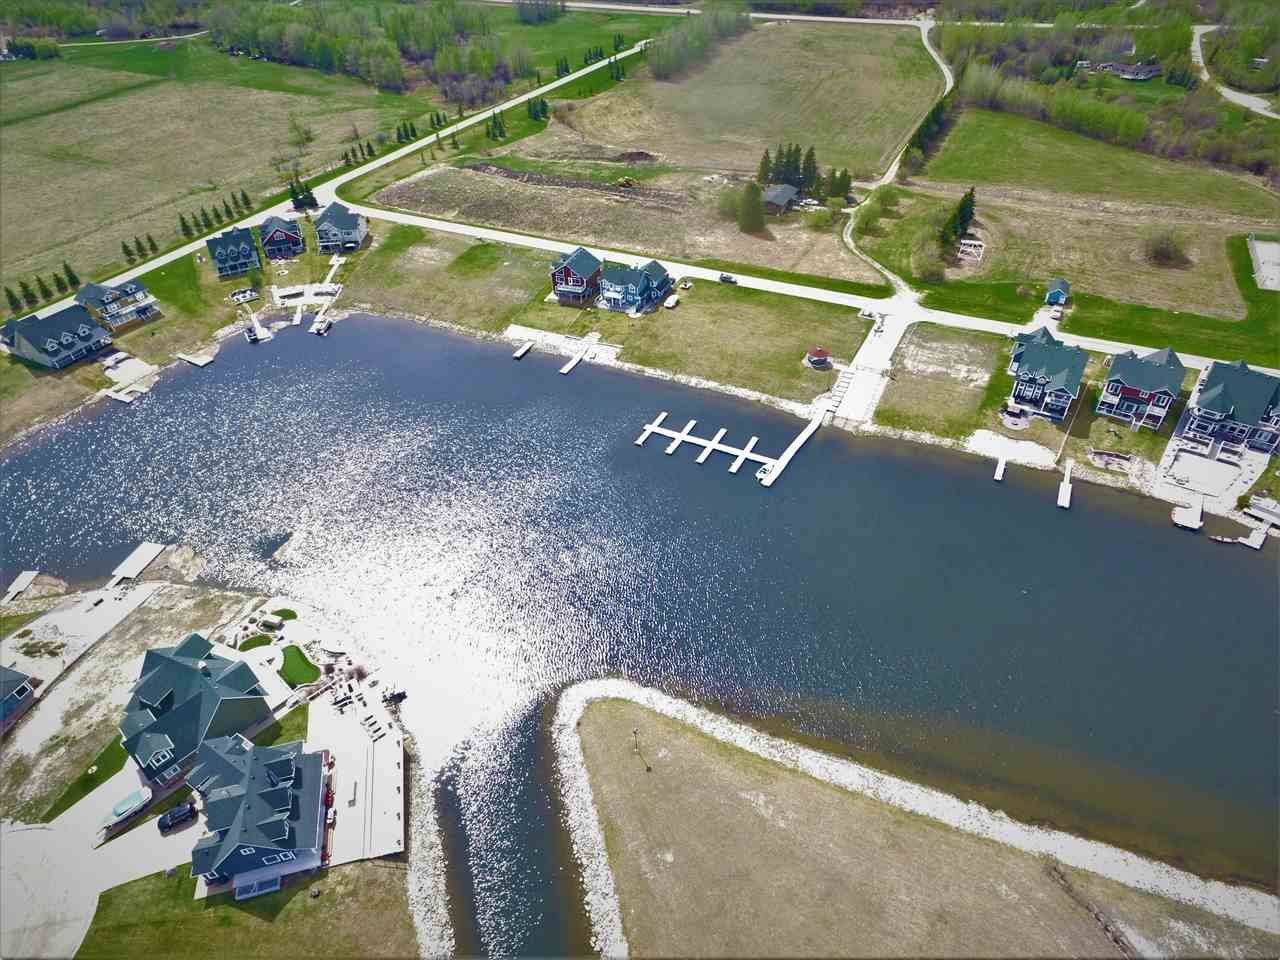 Main Photo: #12 Sunset Harbour: Rural Wetaskiwin County Rural Land/Vacant Lot for sale : MLS®# E4242647